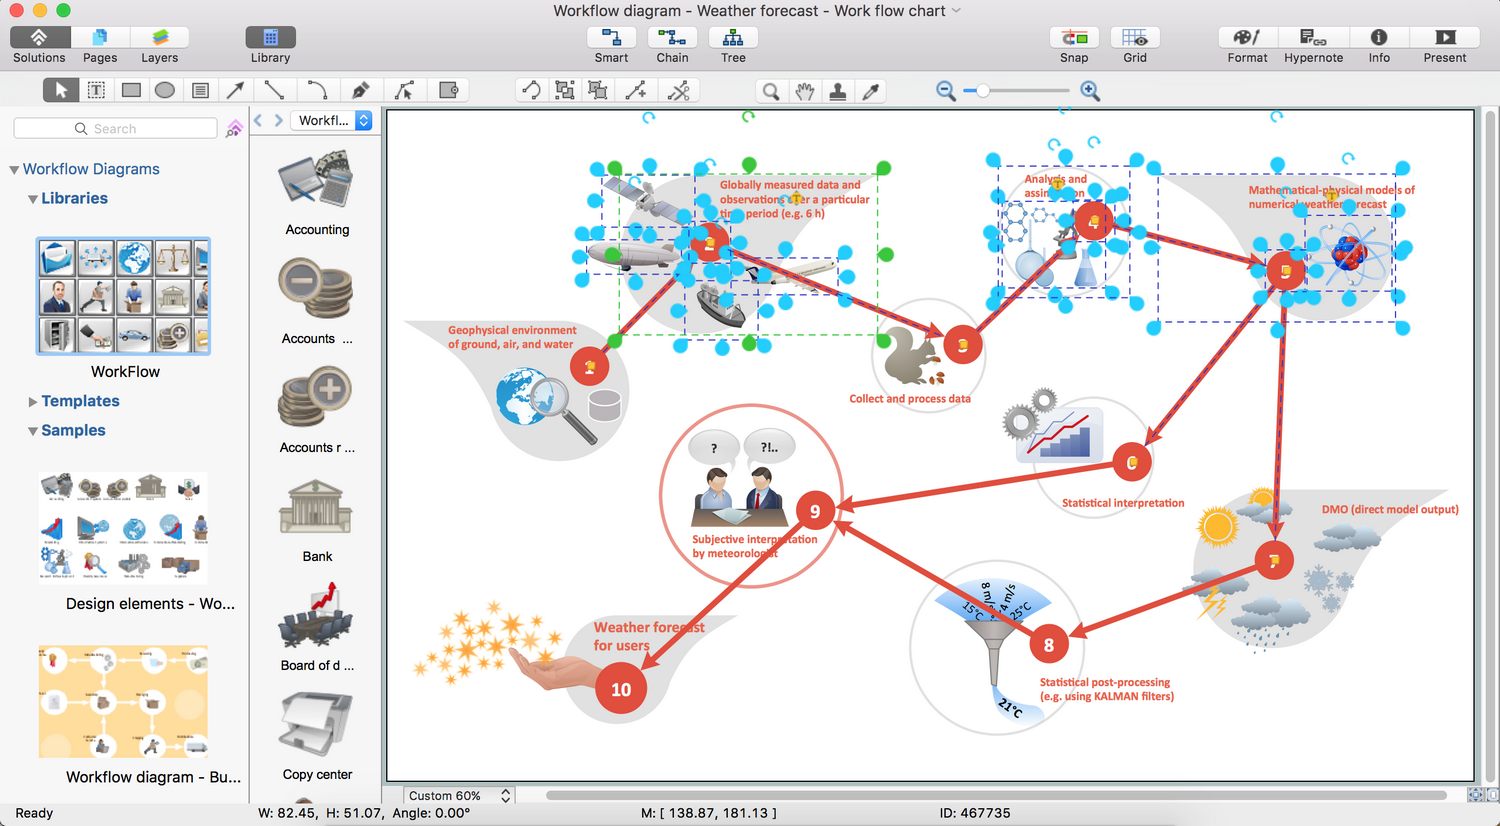 Workflow Solution Mac Os X on Business Process Workflow Diagram